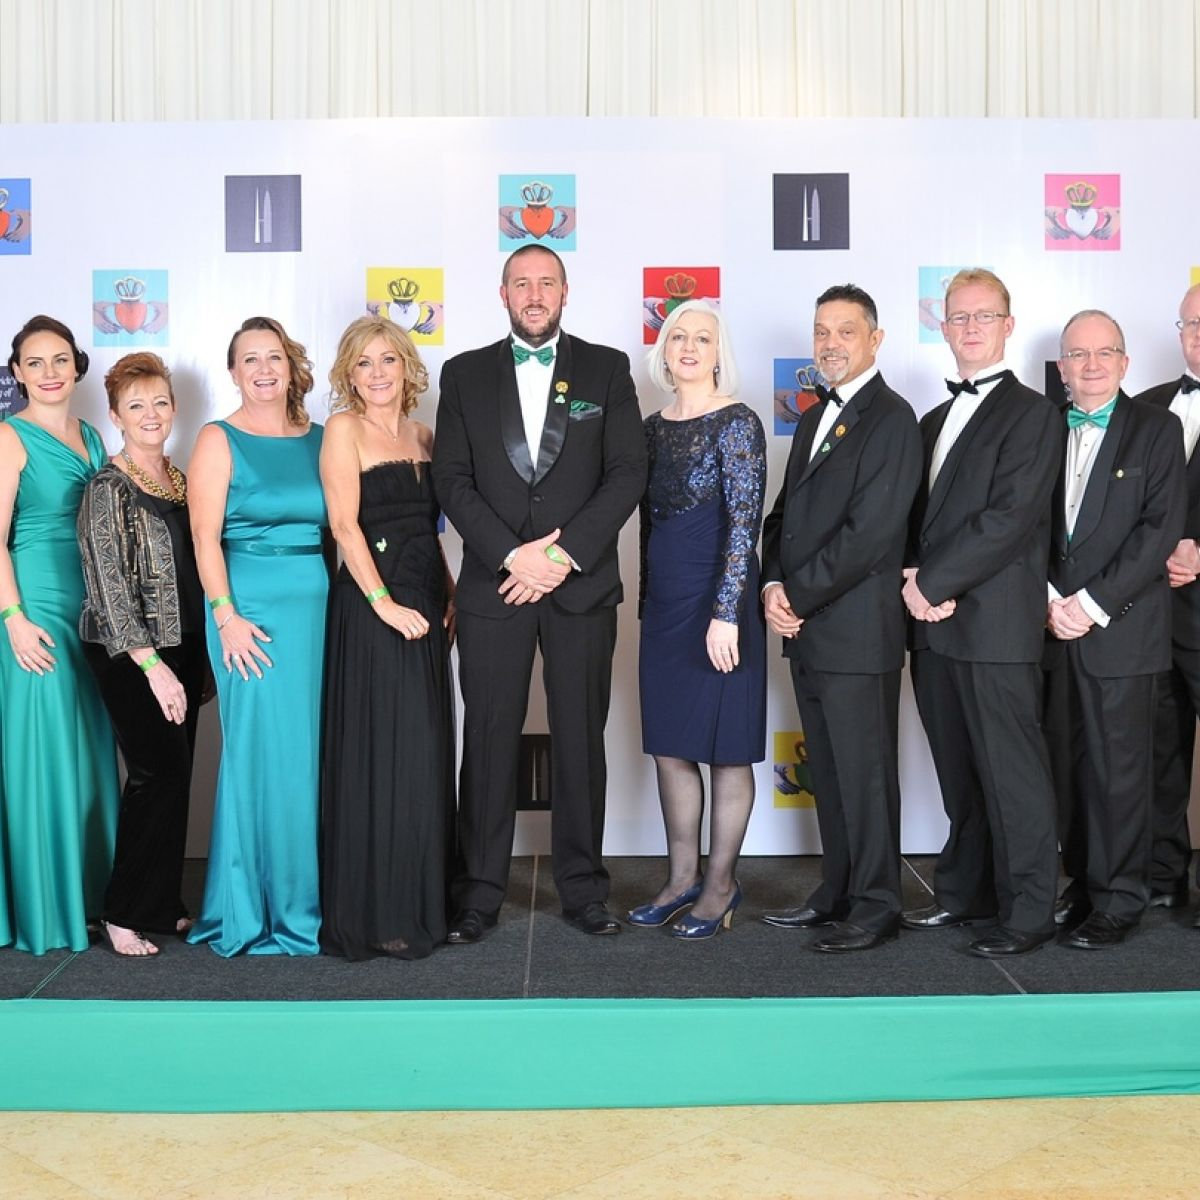 Offaly woman selected as 2018 Dubai Rose of Tralee - Offaly